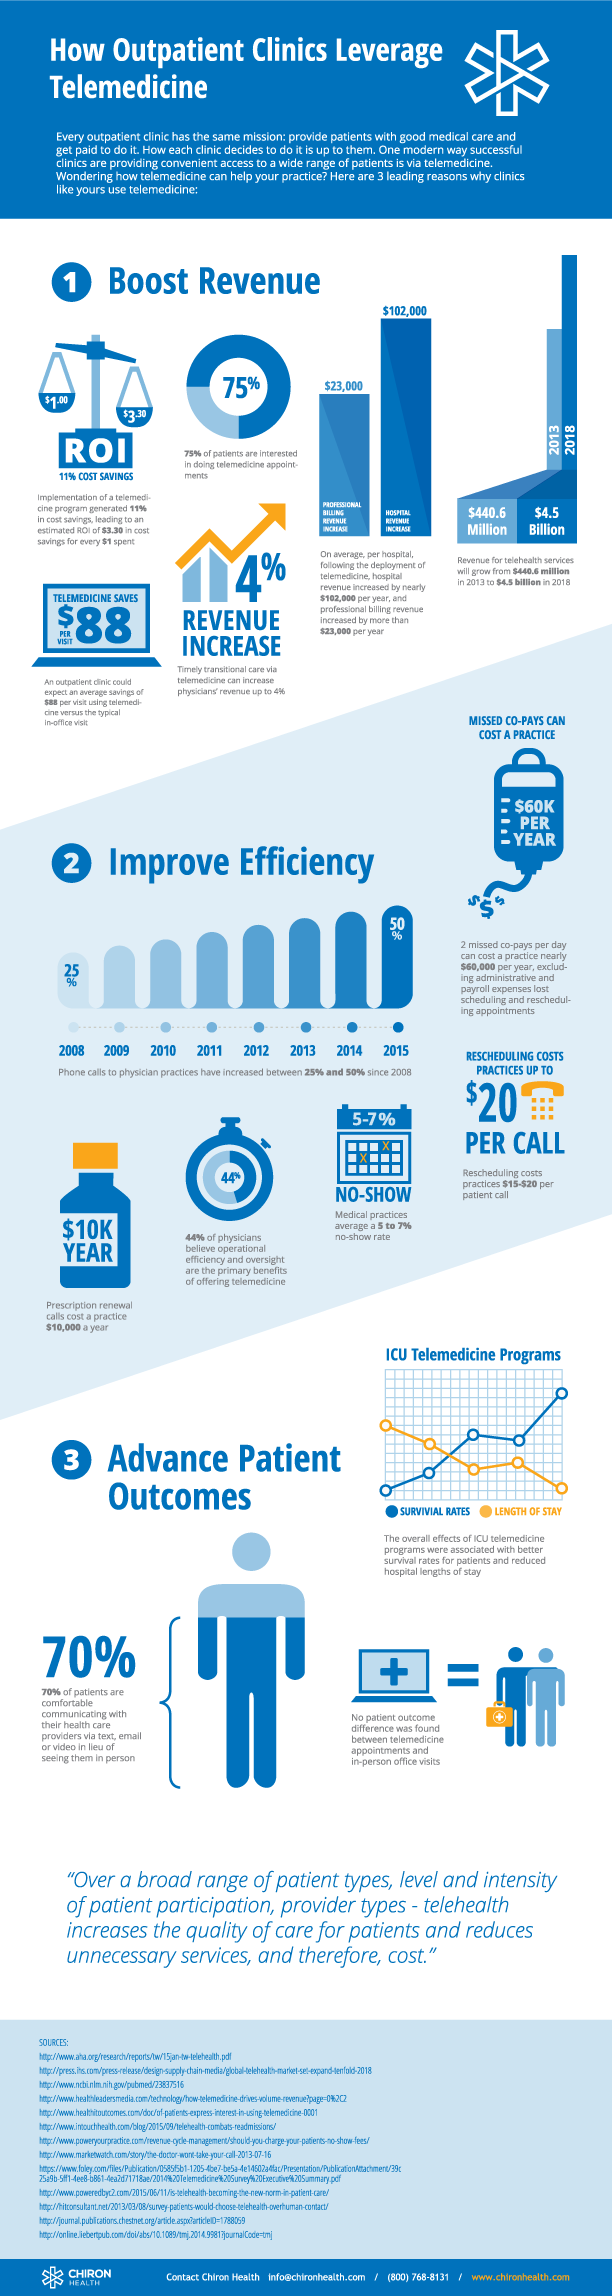 Infographic-Outpatient-Clinics-and-Telemedicine-1.png